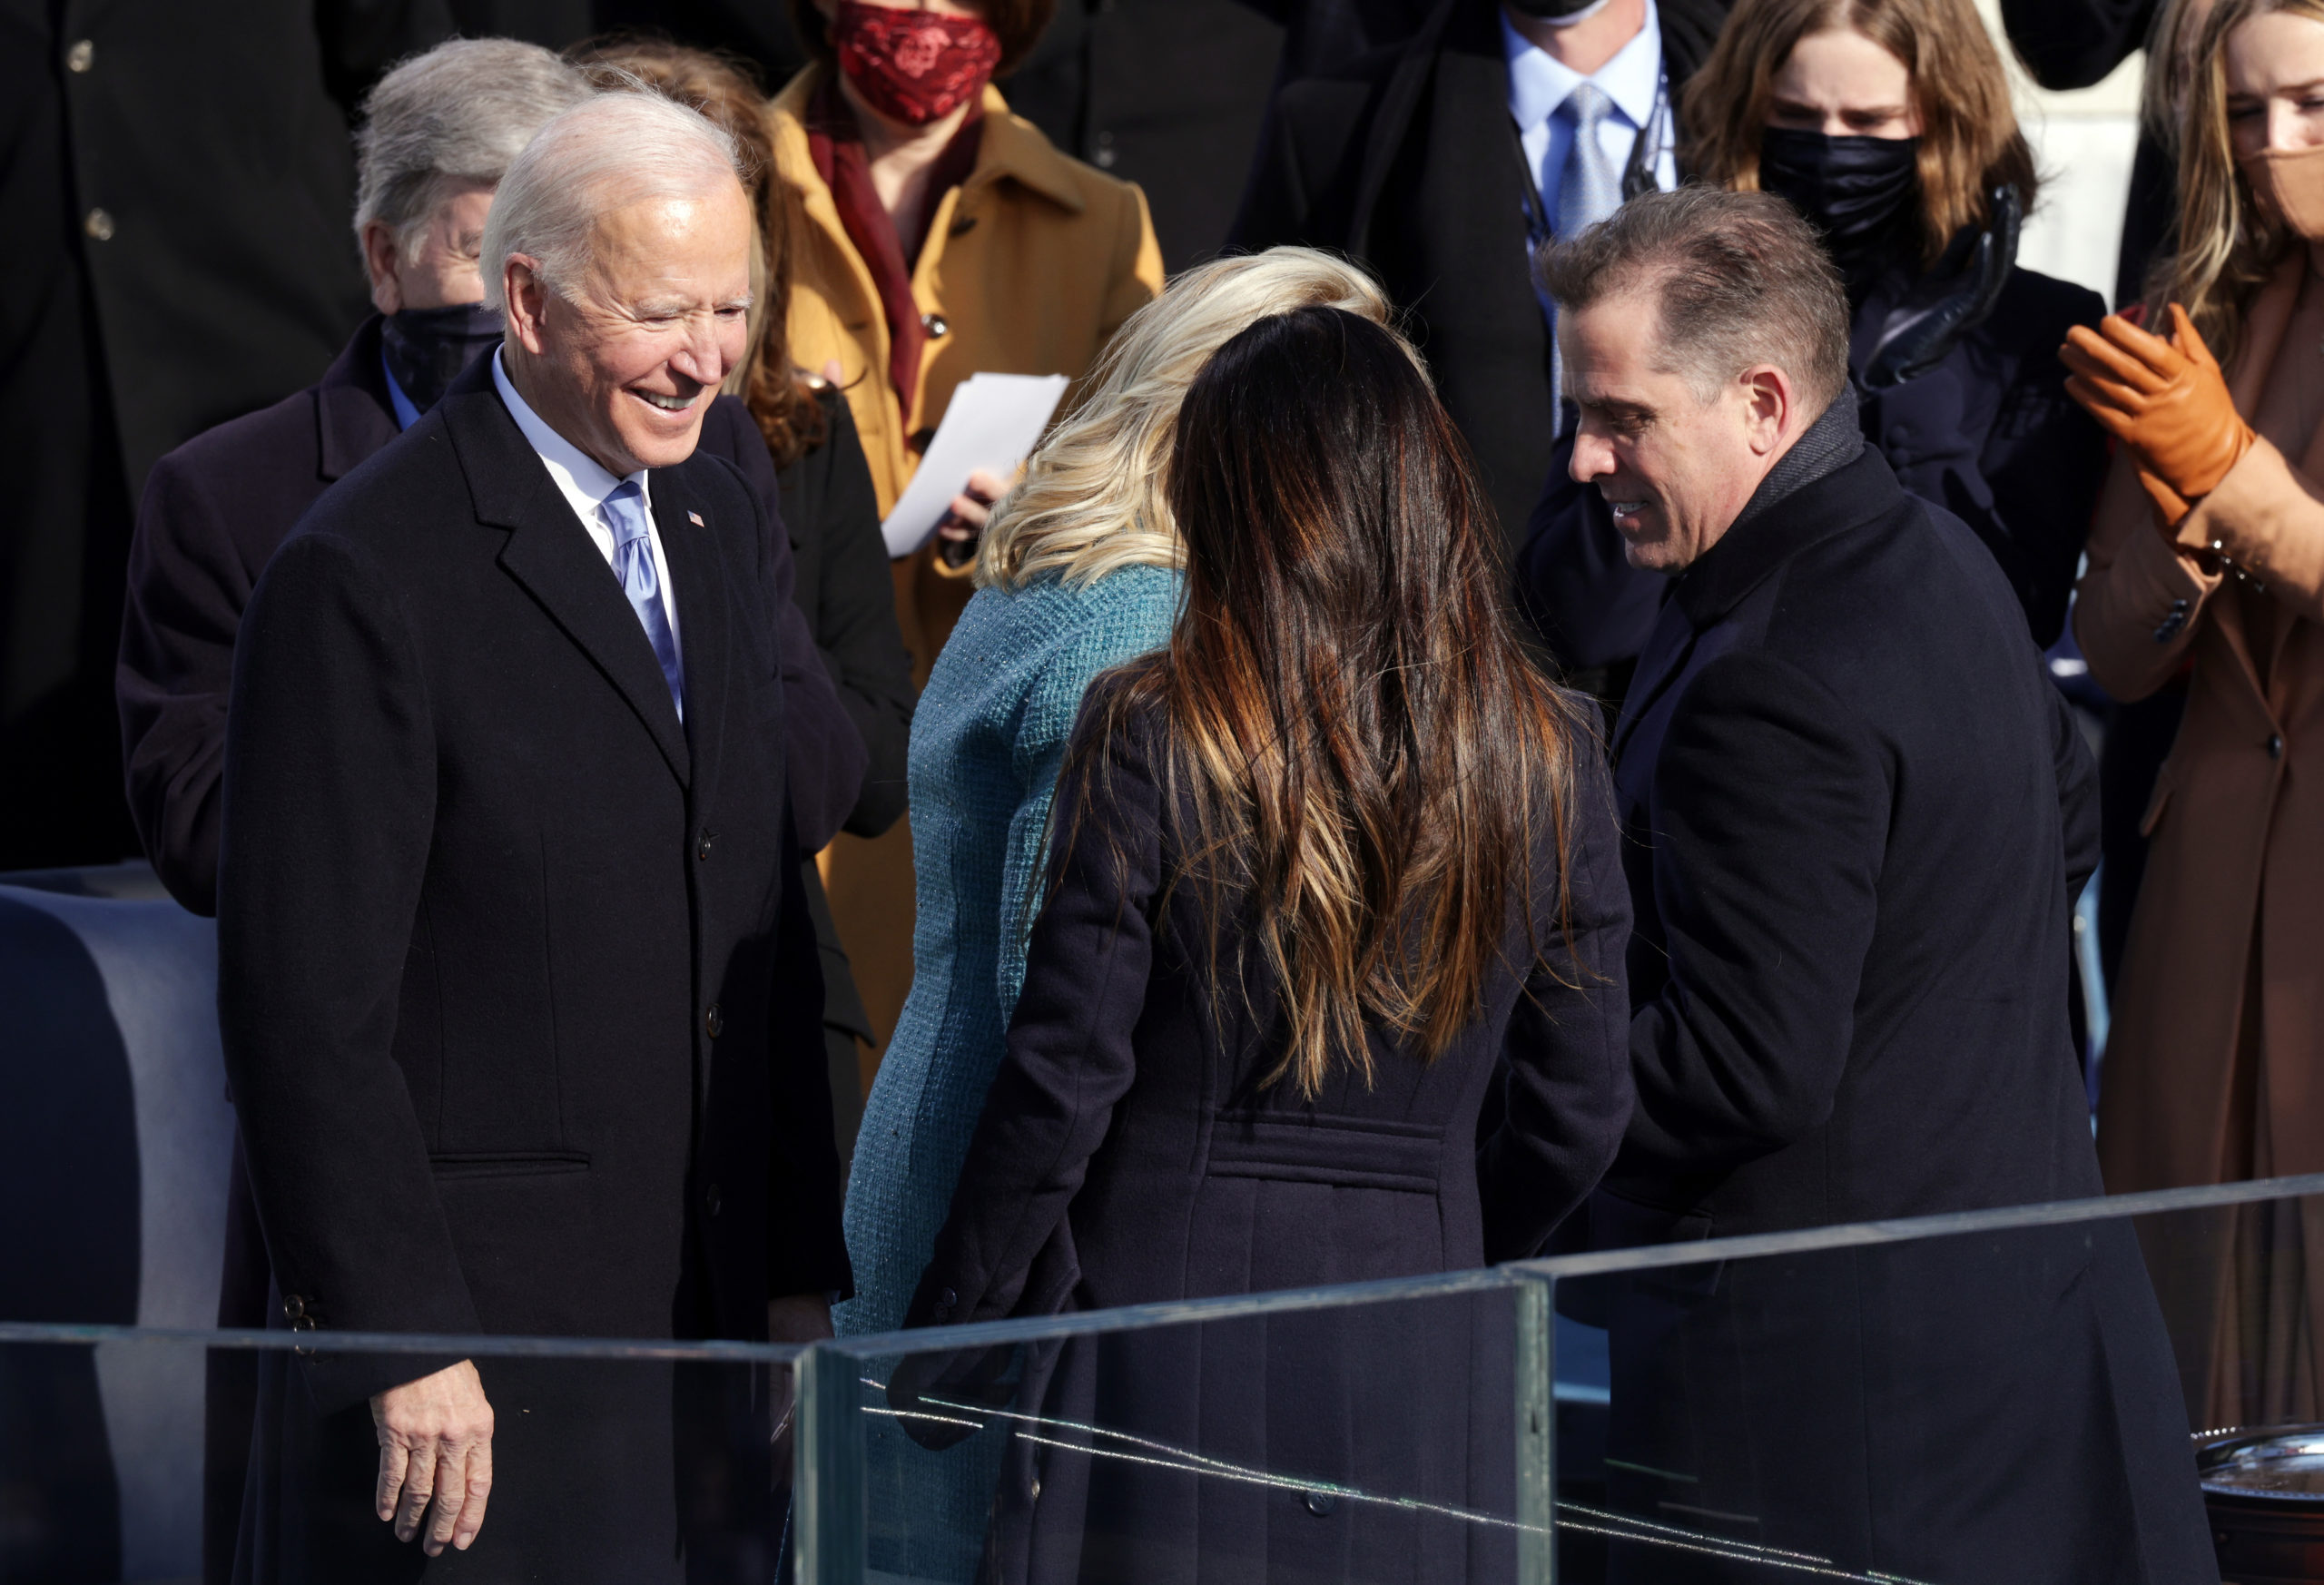 U.S. President Joe Biden greets his wife Dr. Jill Biden, son Hunter Biden and daughter Ashley Biden after being sworn in as U.S. president during his inauguration on the West Front of the U.S. Capitol on January 20, 2021, in Washington, DC. (Alex Wong/Getty Images)